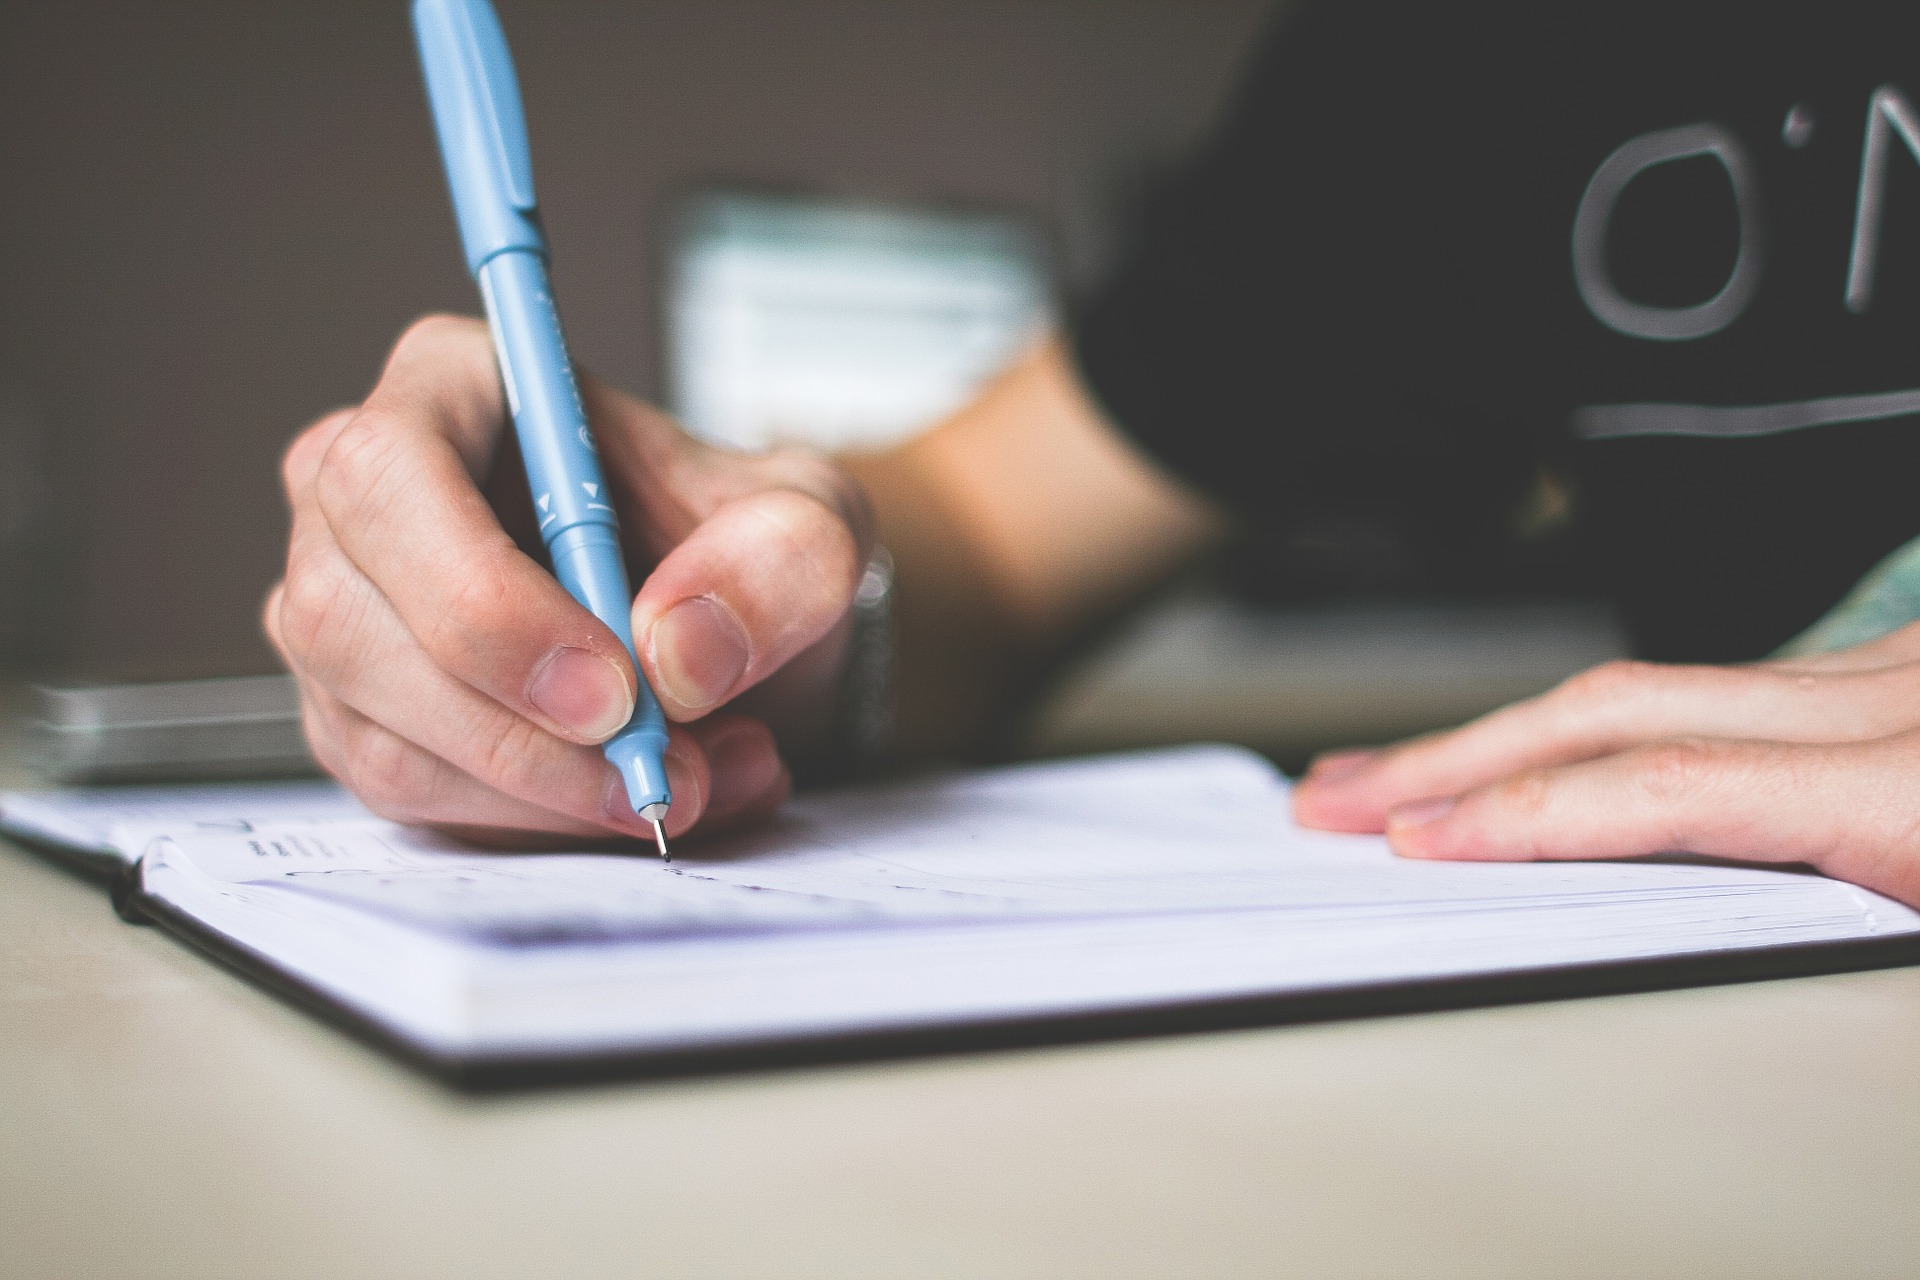 tips for writing a well organized reflective essay how to   get disorganized talking about anything and everything in a chaotic order make sure you compose a reflective essay outline before you get to writing